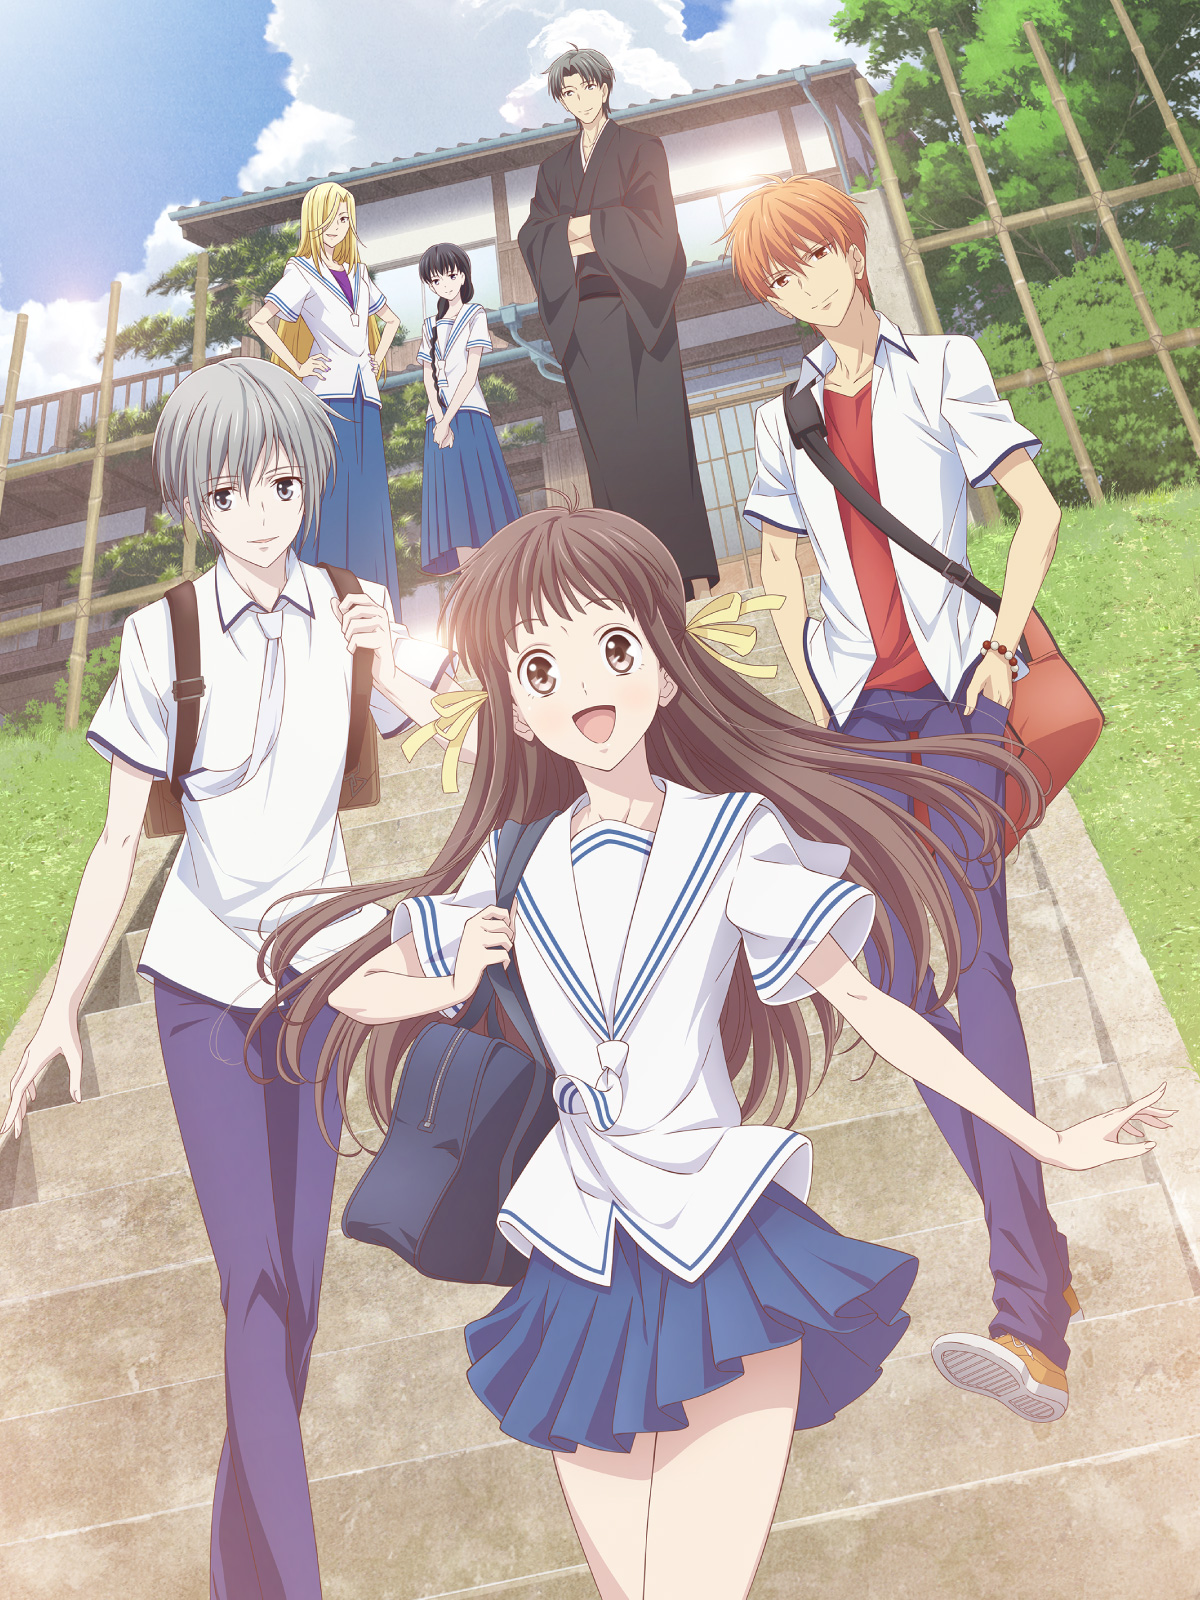 Fruits Basket visual